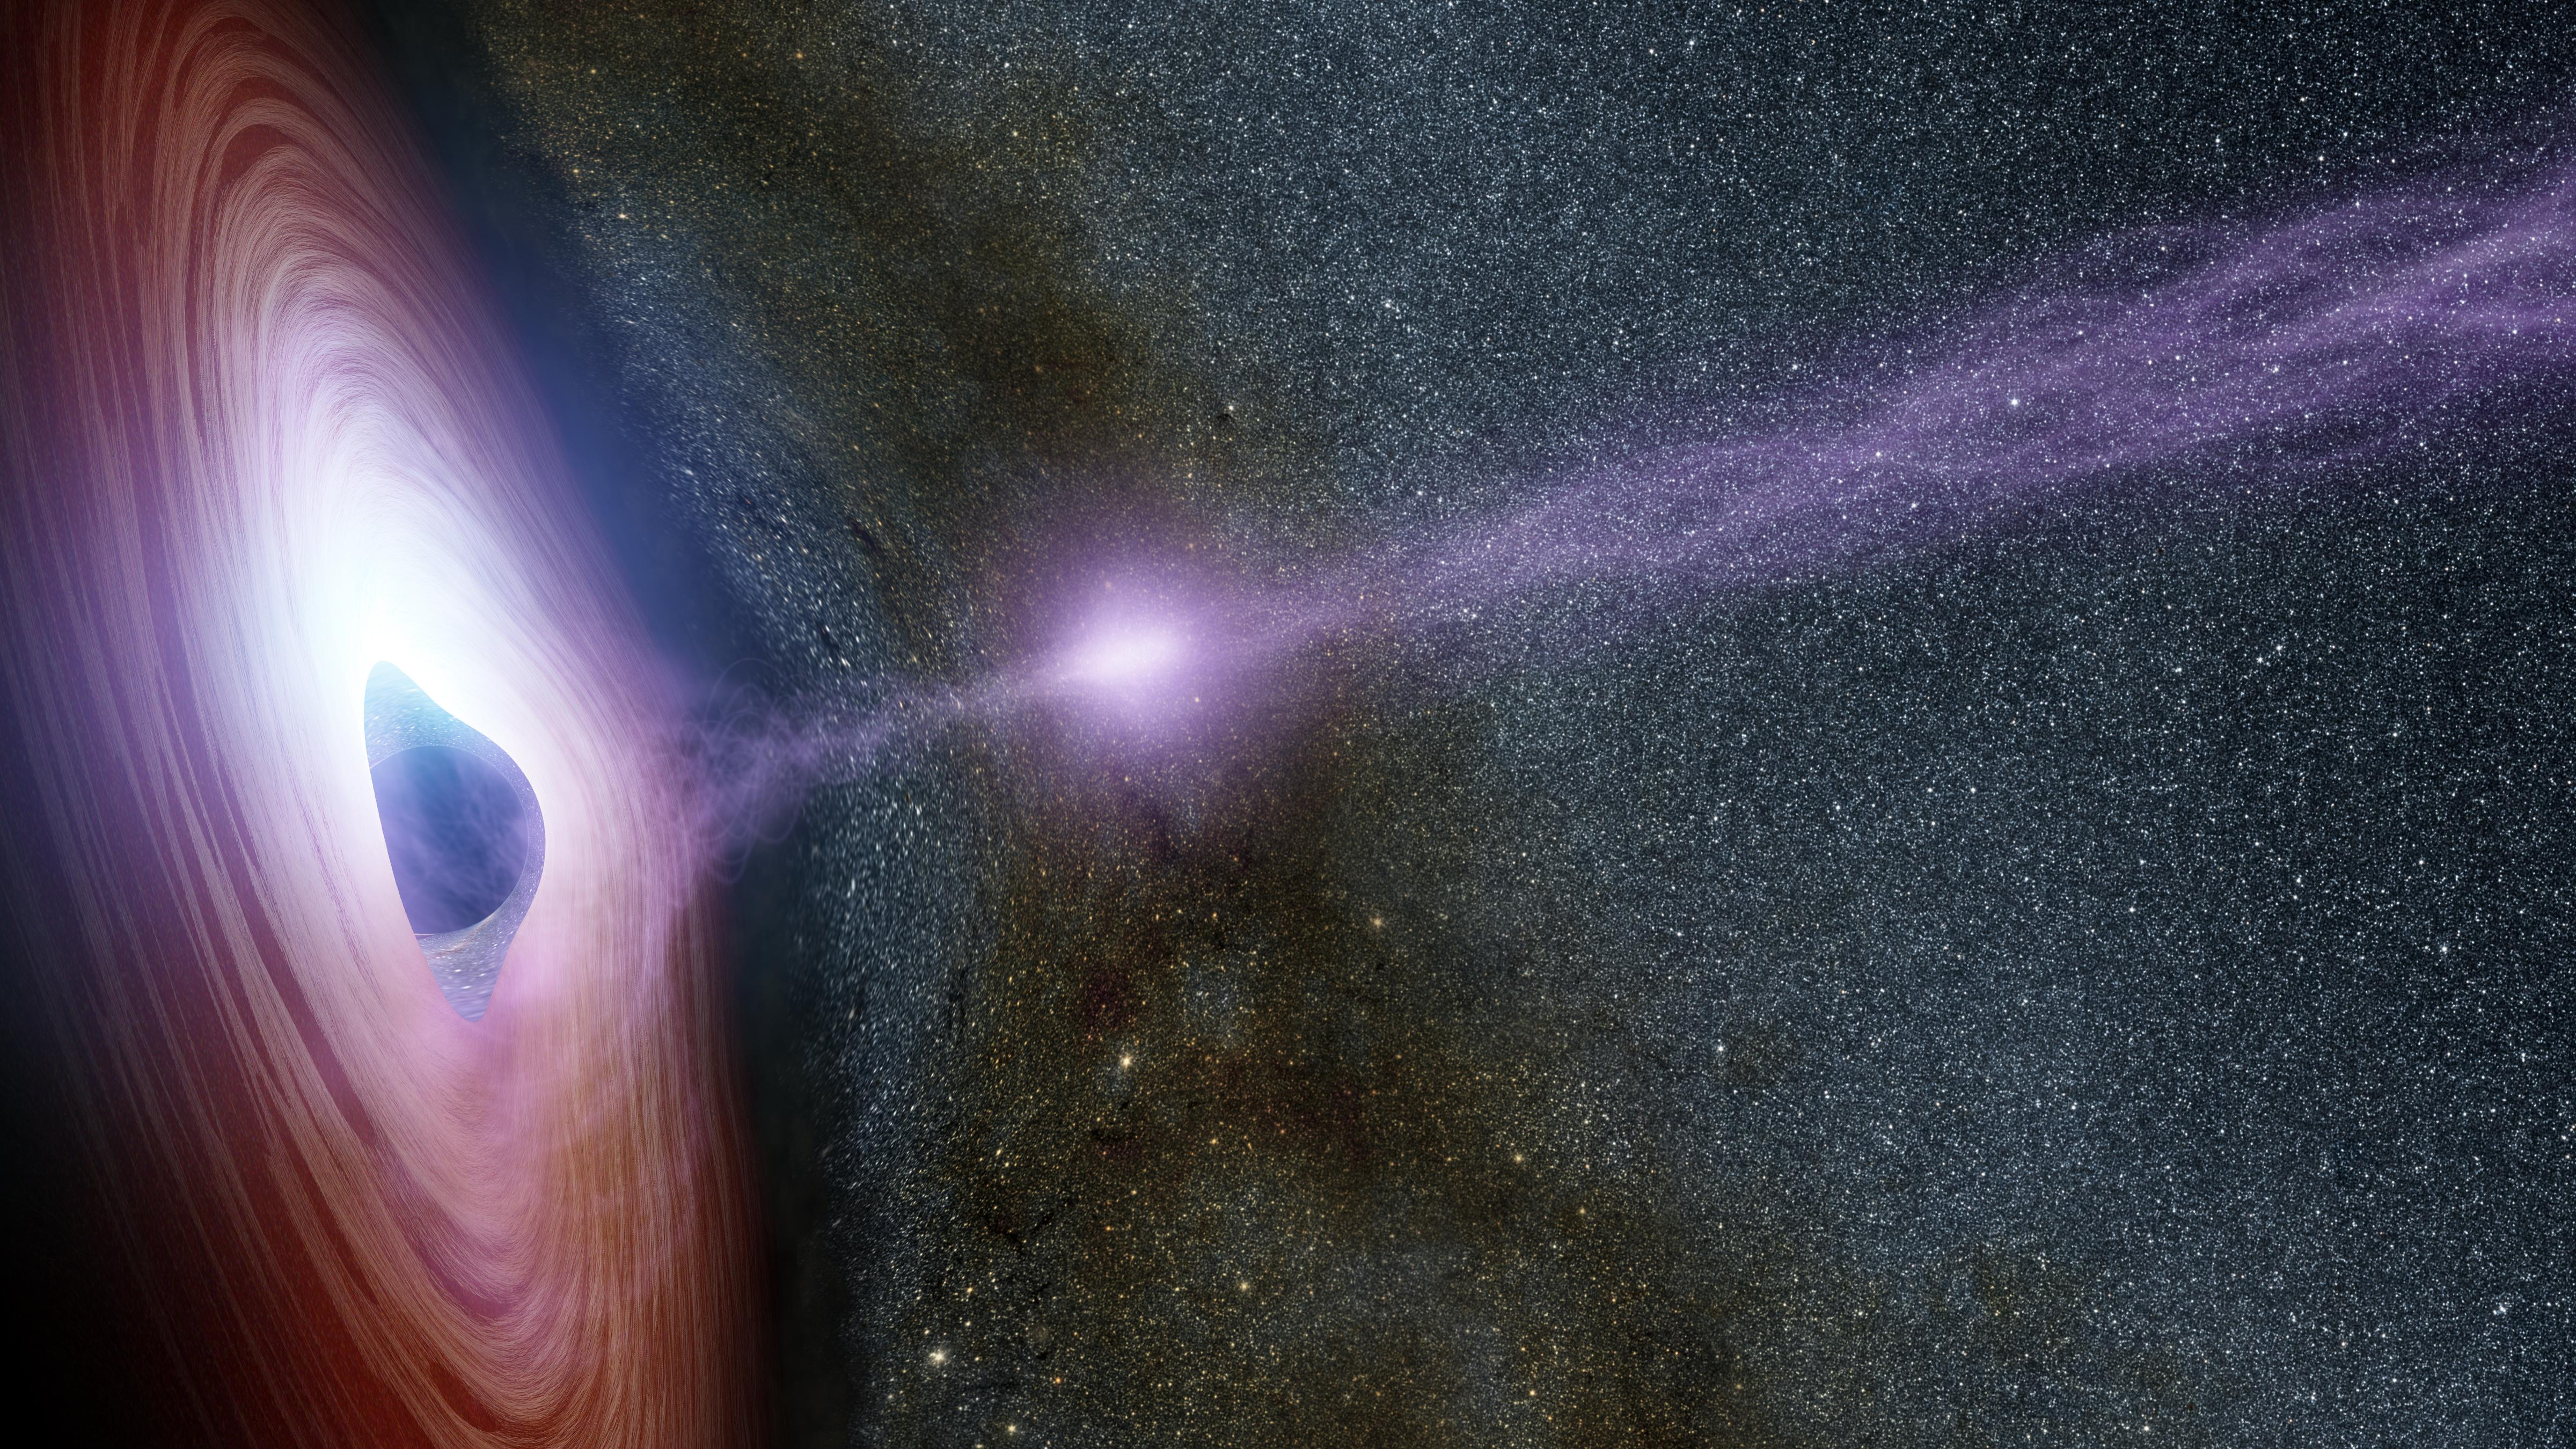 space images shifting coronas around black holes artist concept